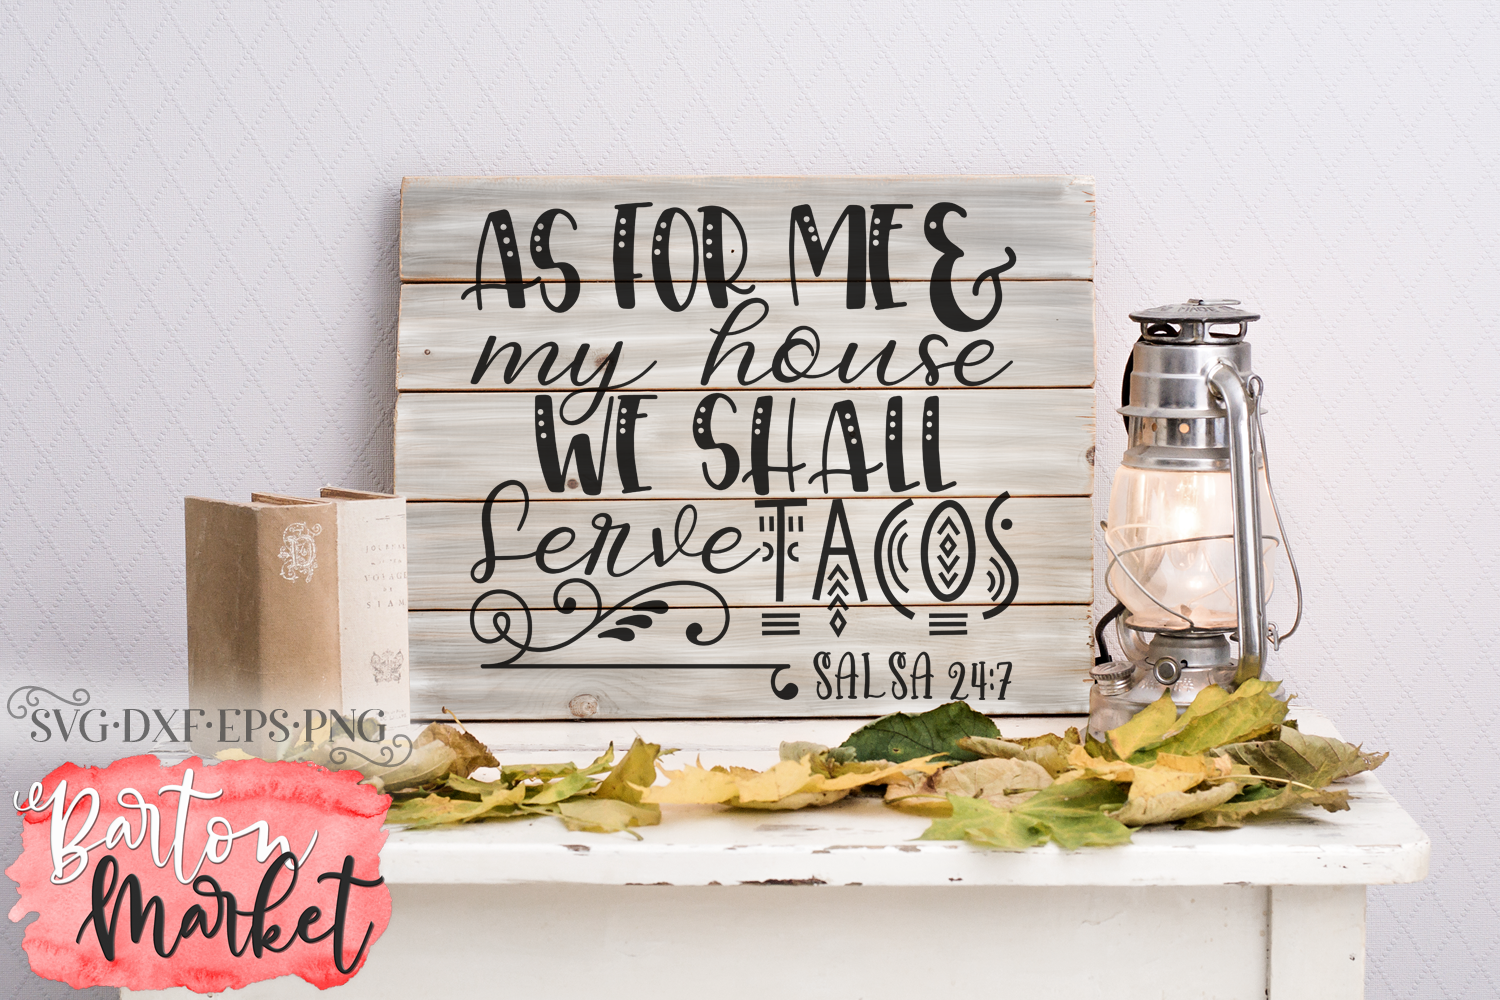 As For Me & My House We Shall Serve Tacos SVG DXF EPS PNG example image 1